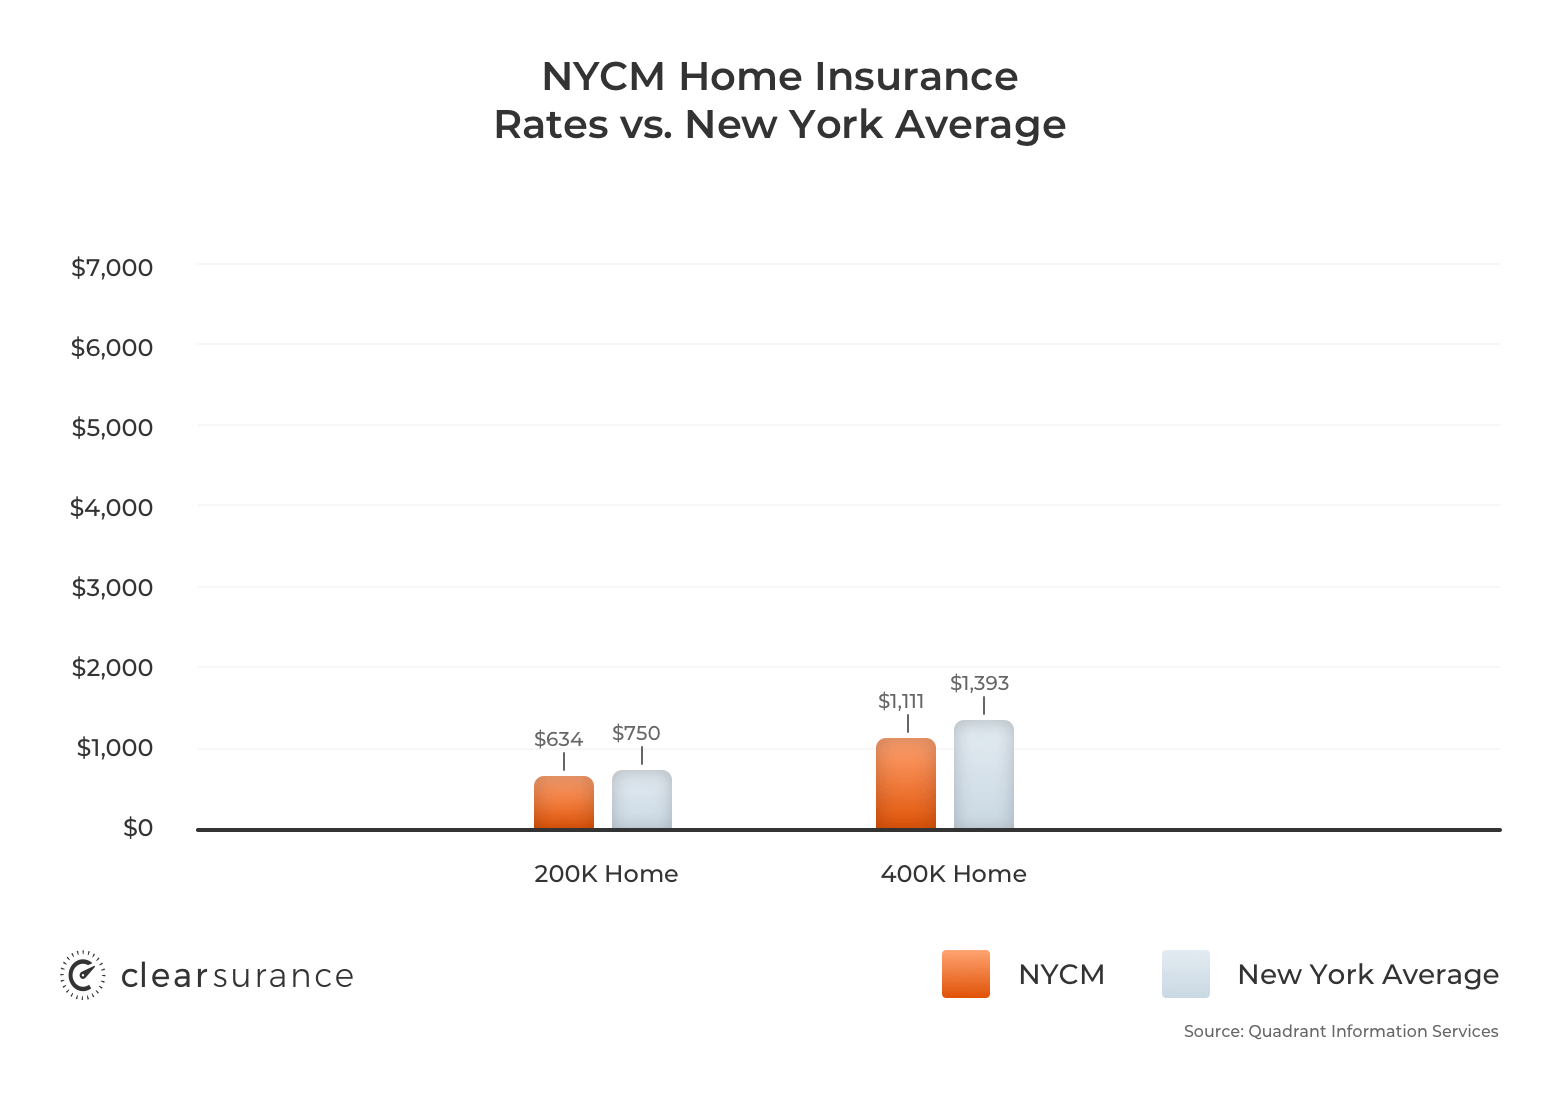 NYCM homeowners insurance rates